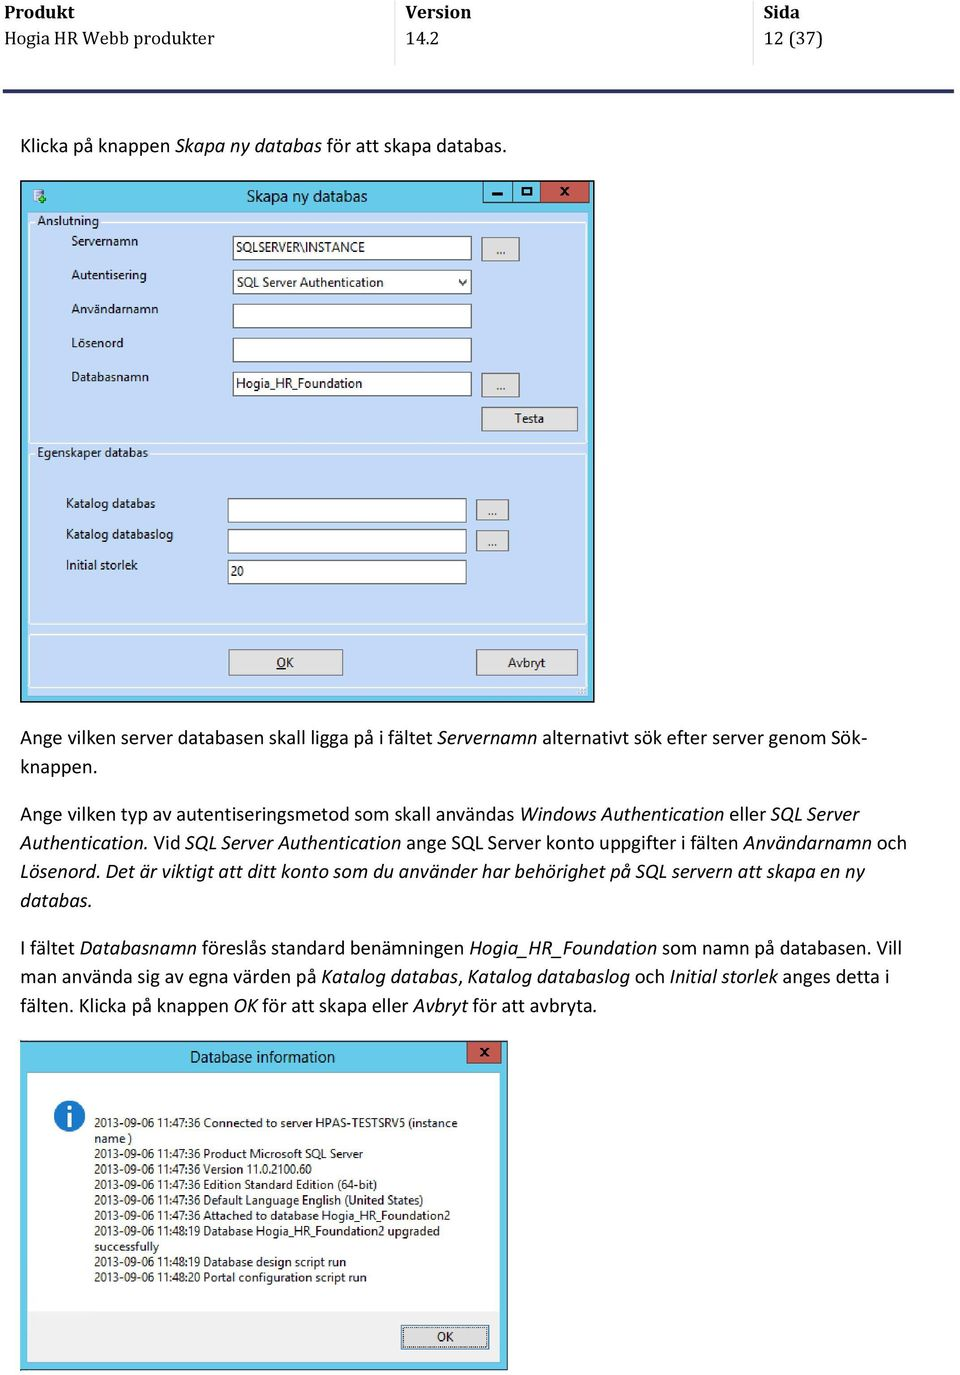 Ange vilken typ av autentiseringsmetod som skall användas Windows Authentication eller SQL Server Authentication.